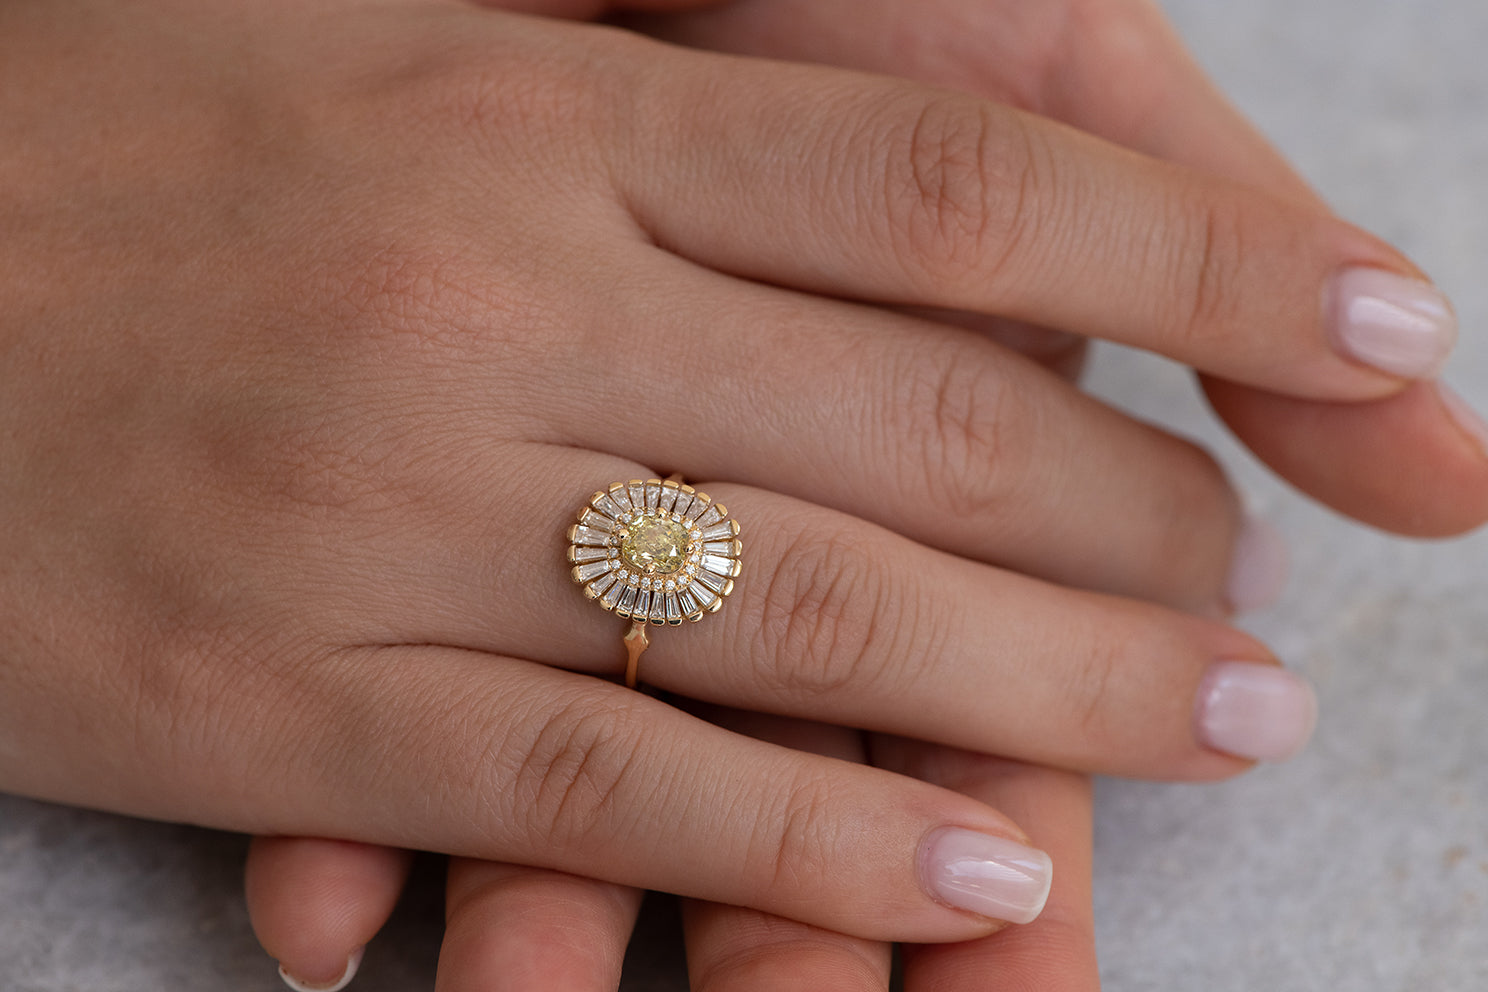 Daisy Engagement Ring - Fancy Yellow Diamond and Baguette Diamond Ring Up Close on Hand